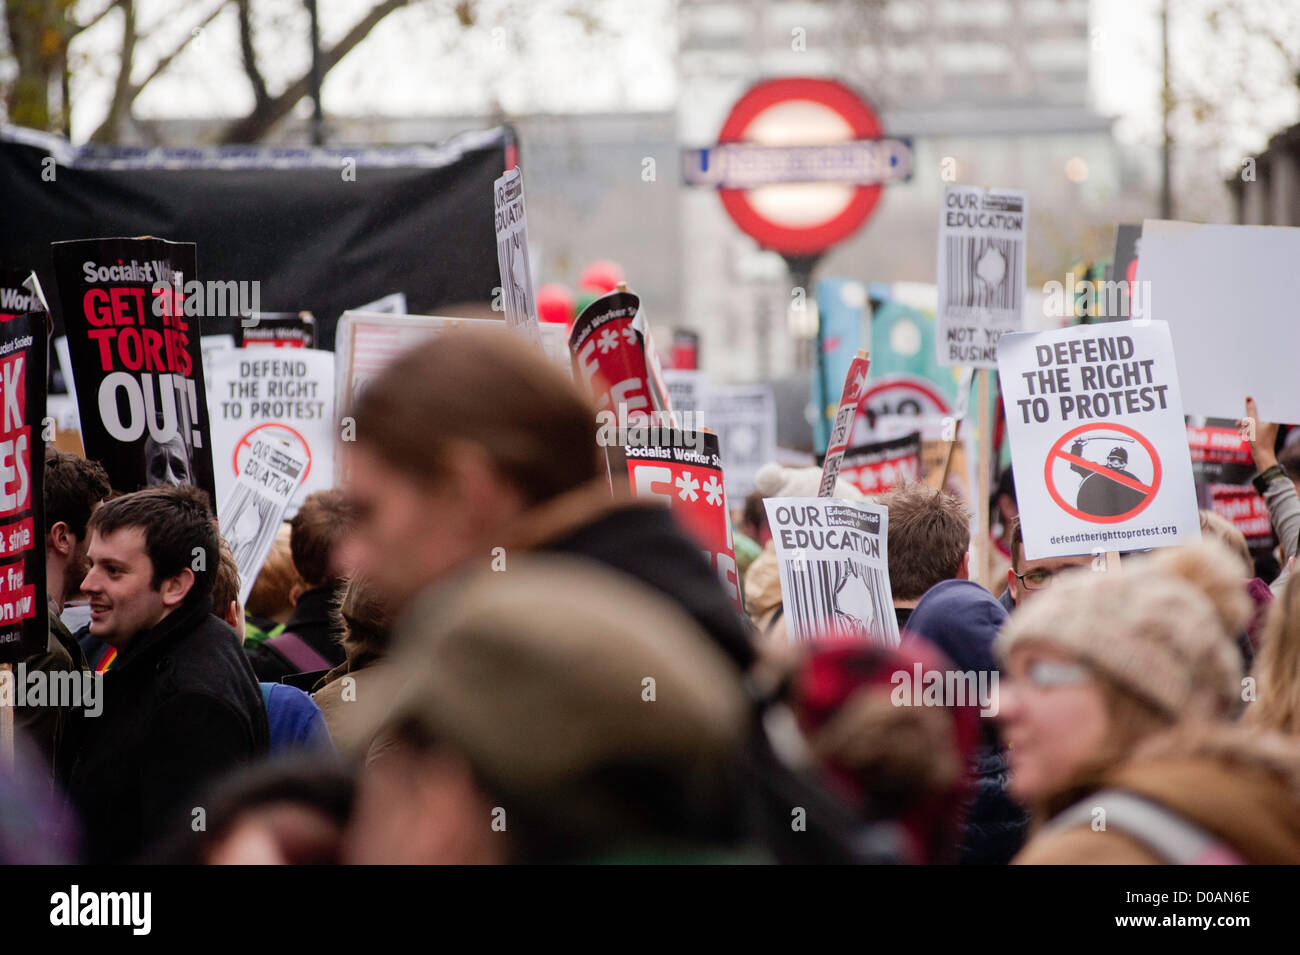 London, UK - 21 November 2012: thousand of students take part in a march organised by the National Union of Students - Stock Image